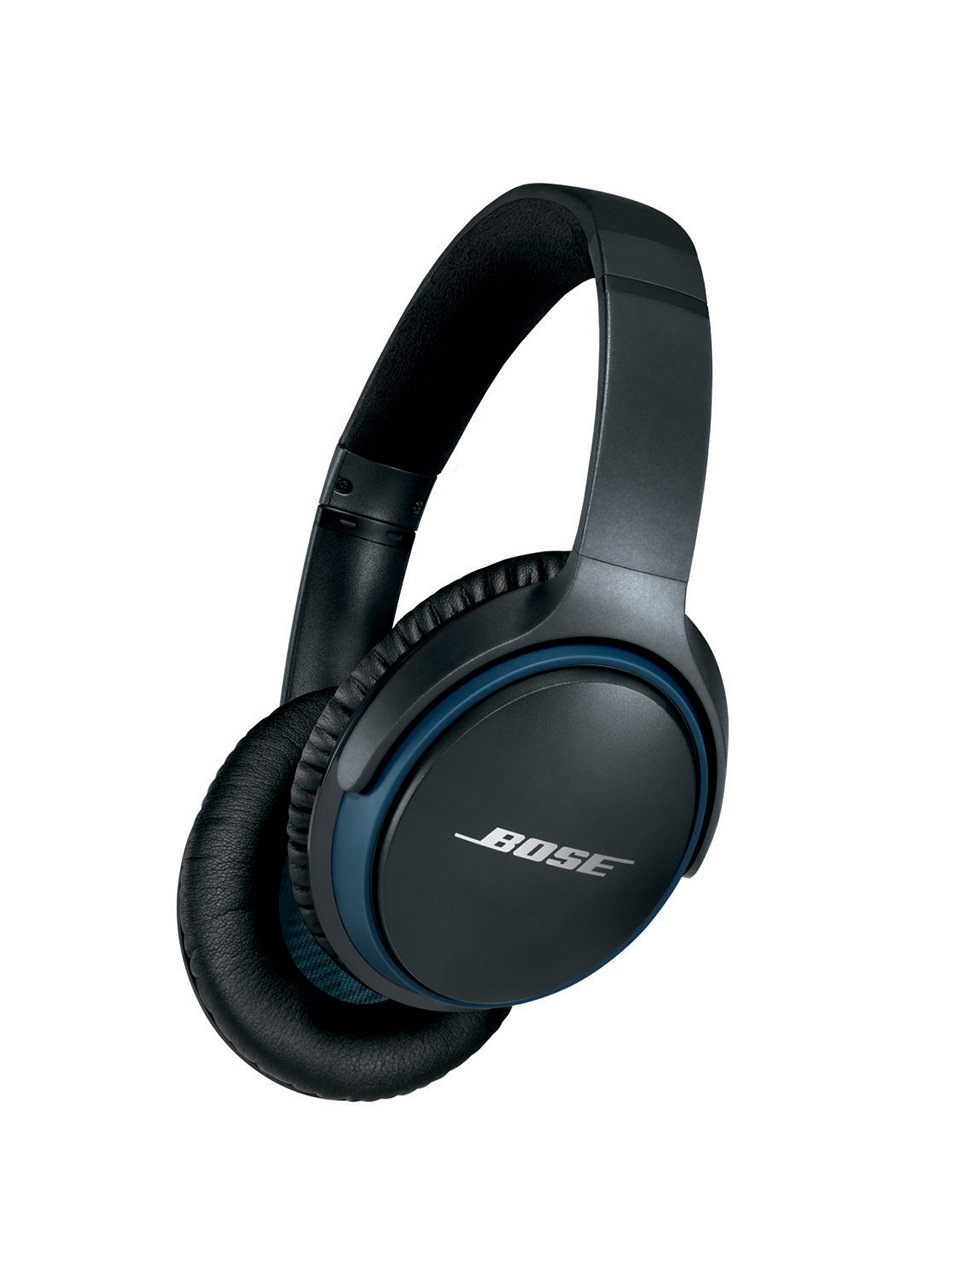 Bose SoundLink II Around-ear